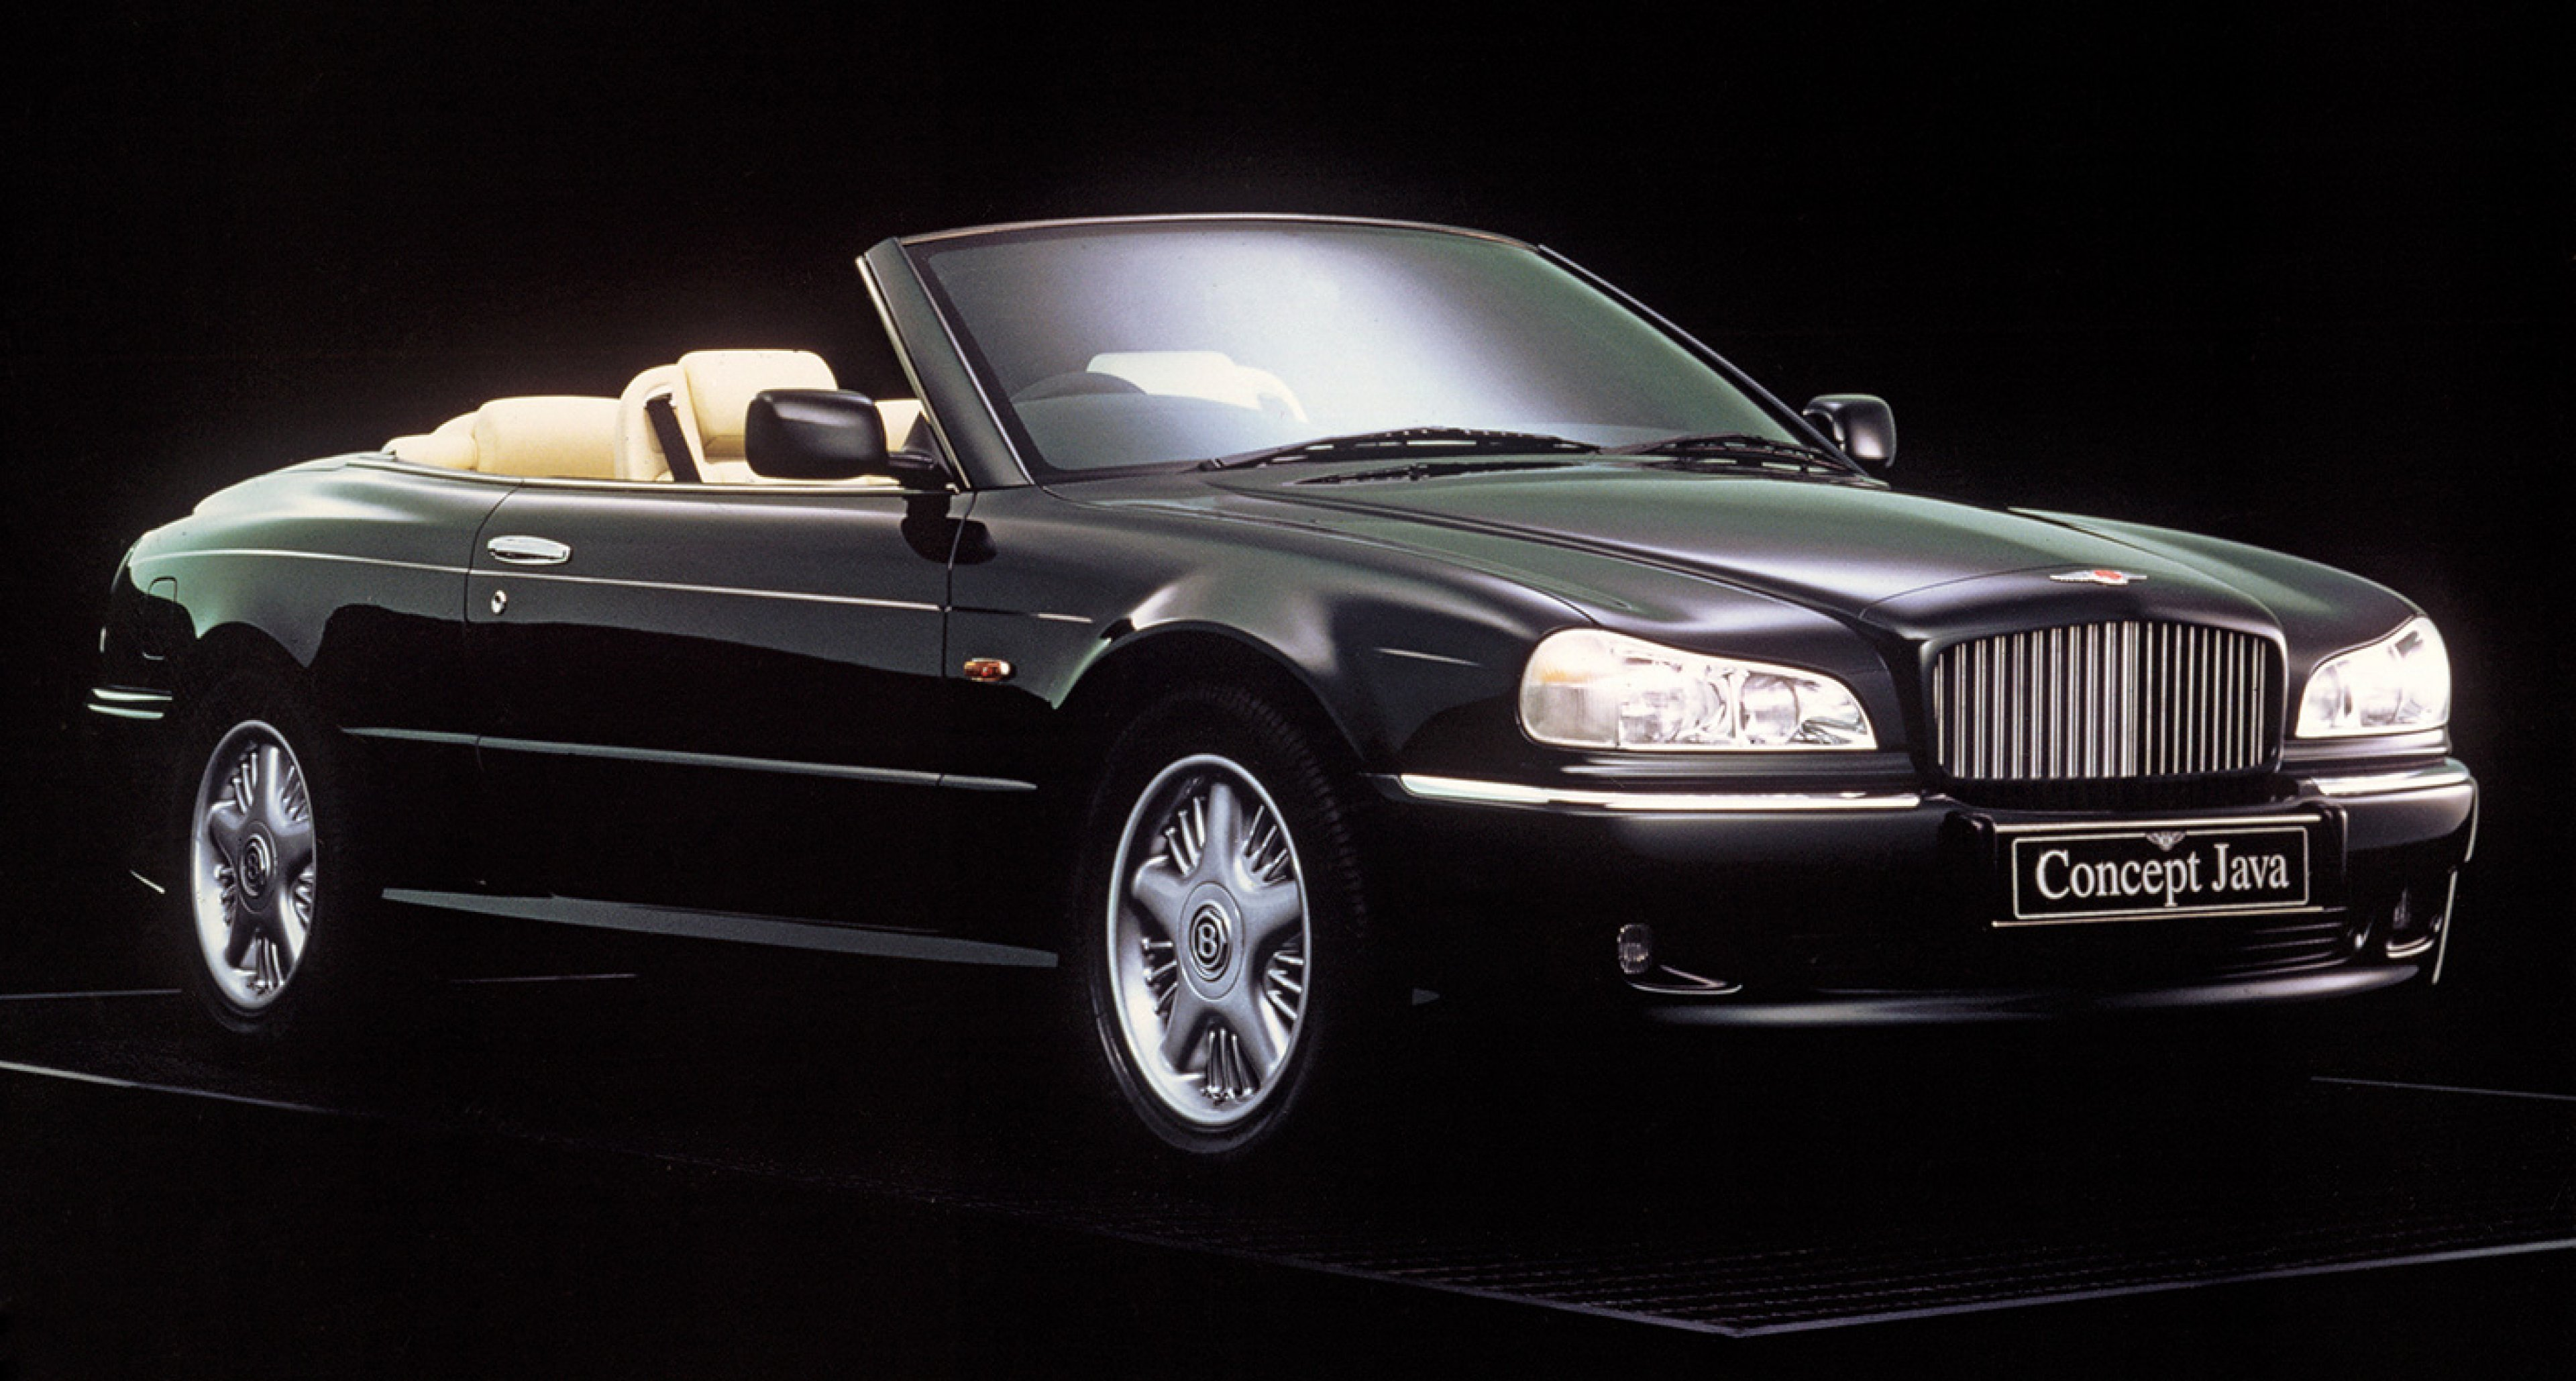 Concept Java convertible of the mid-90s